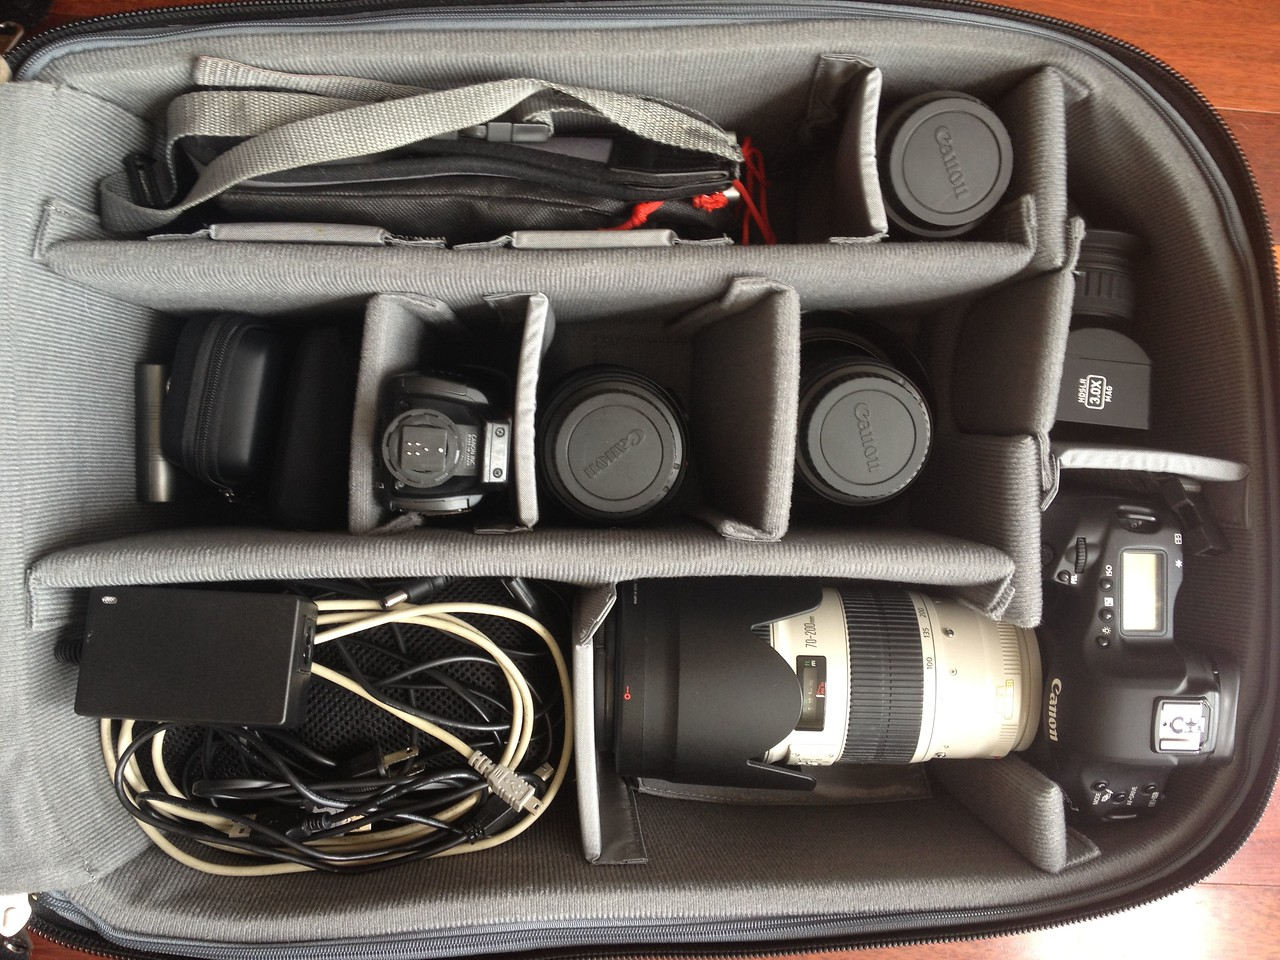 ThinkTank Airport Security locked and loaded! No Graflex on this trip